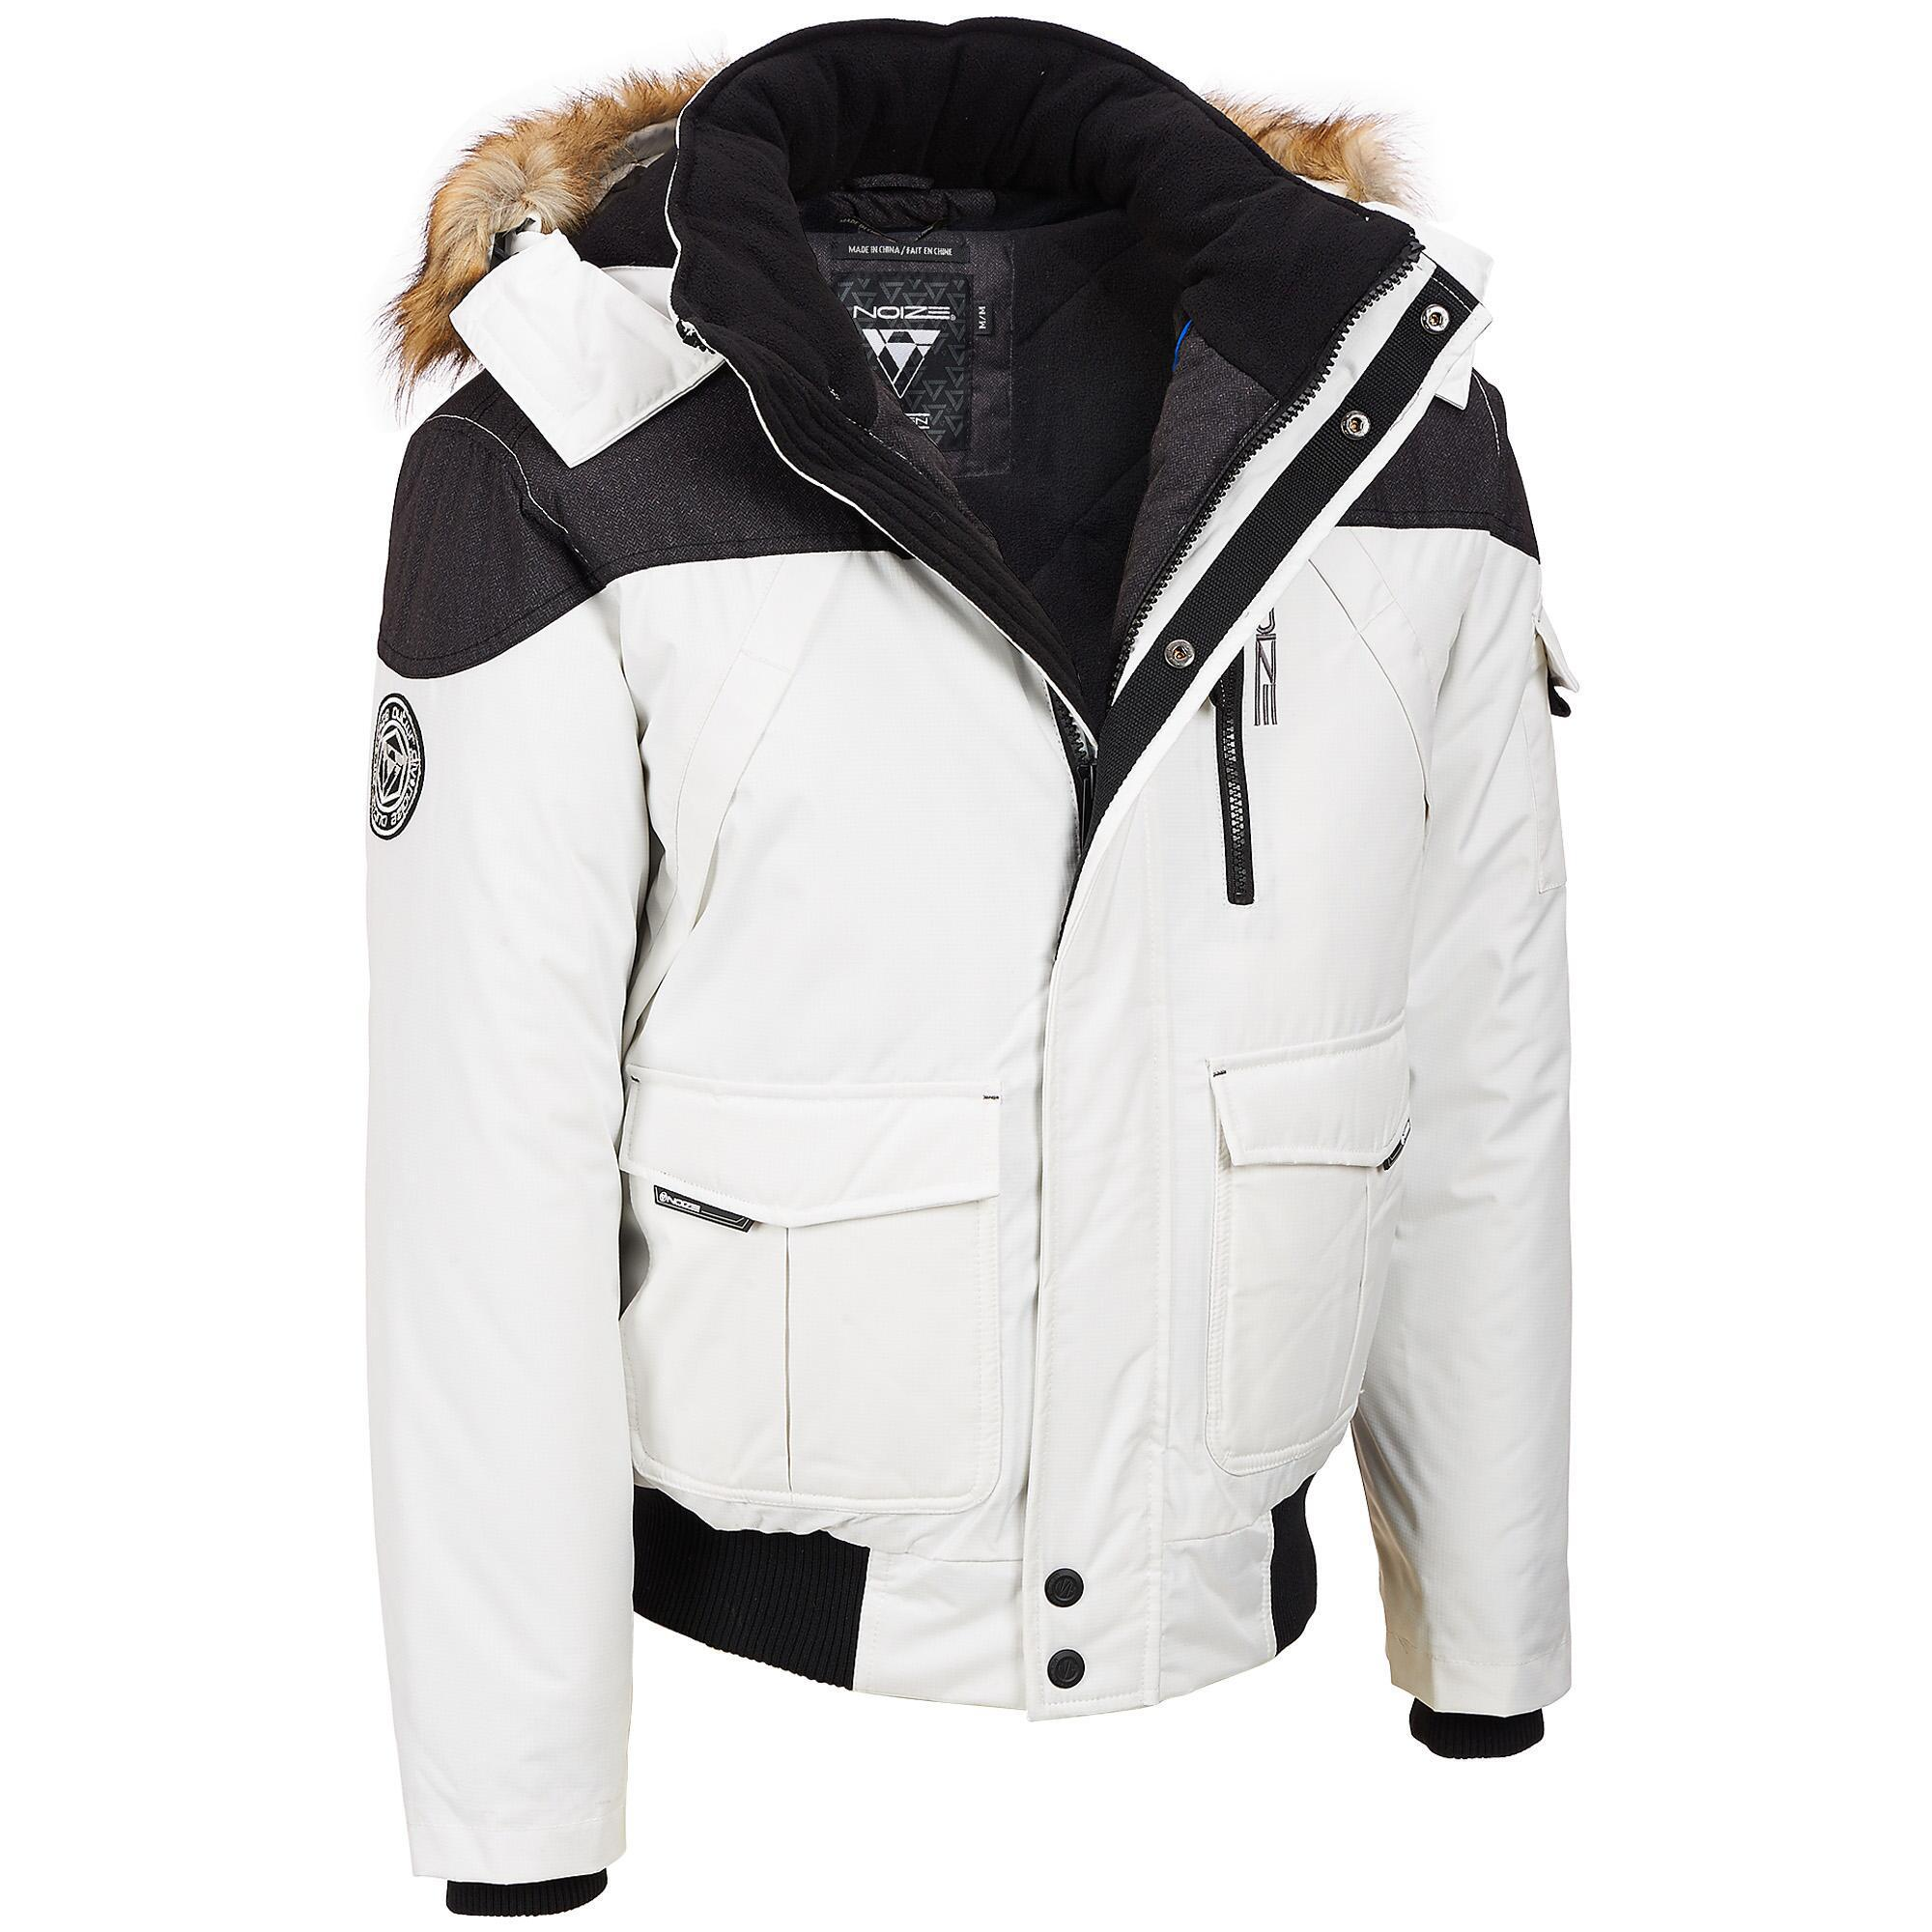 a82e5749c Wilsons Leather Noize Fabric Bomber W/ Faux Fur Trim in White for ...